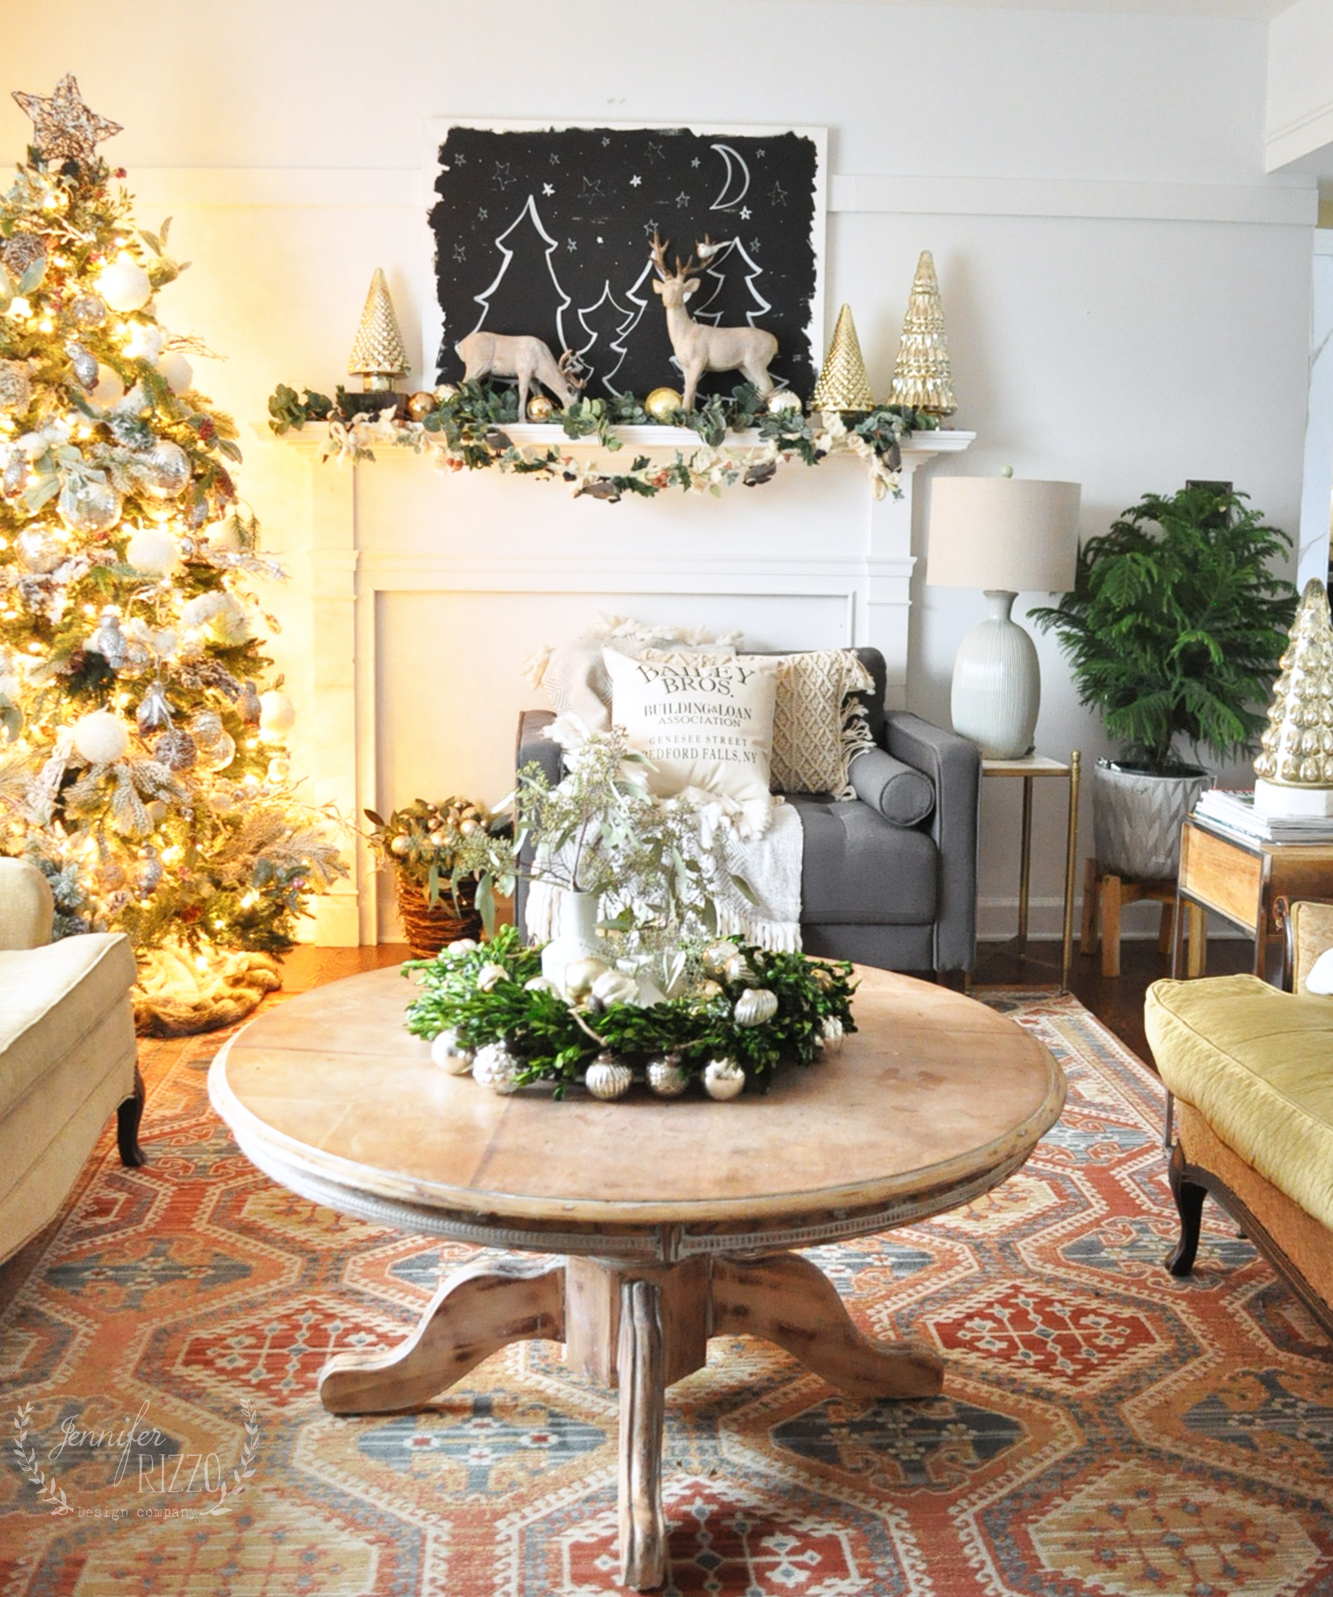 Love this Christmas living room with hand painted black and white starry art on the mantel